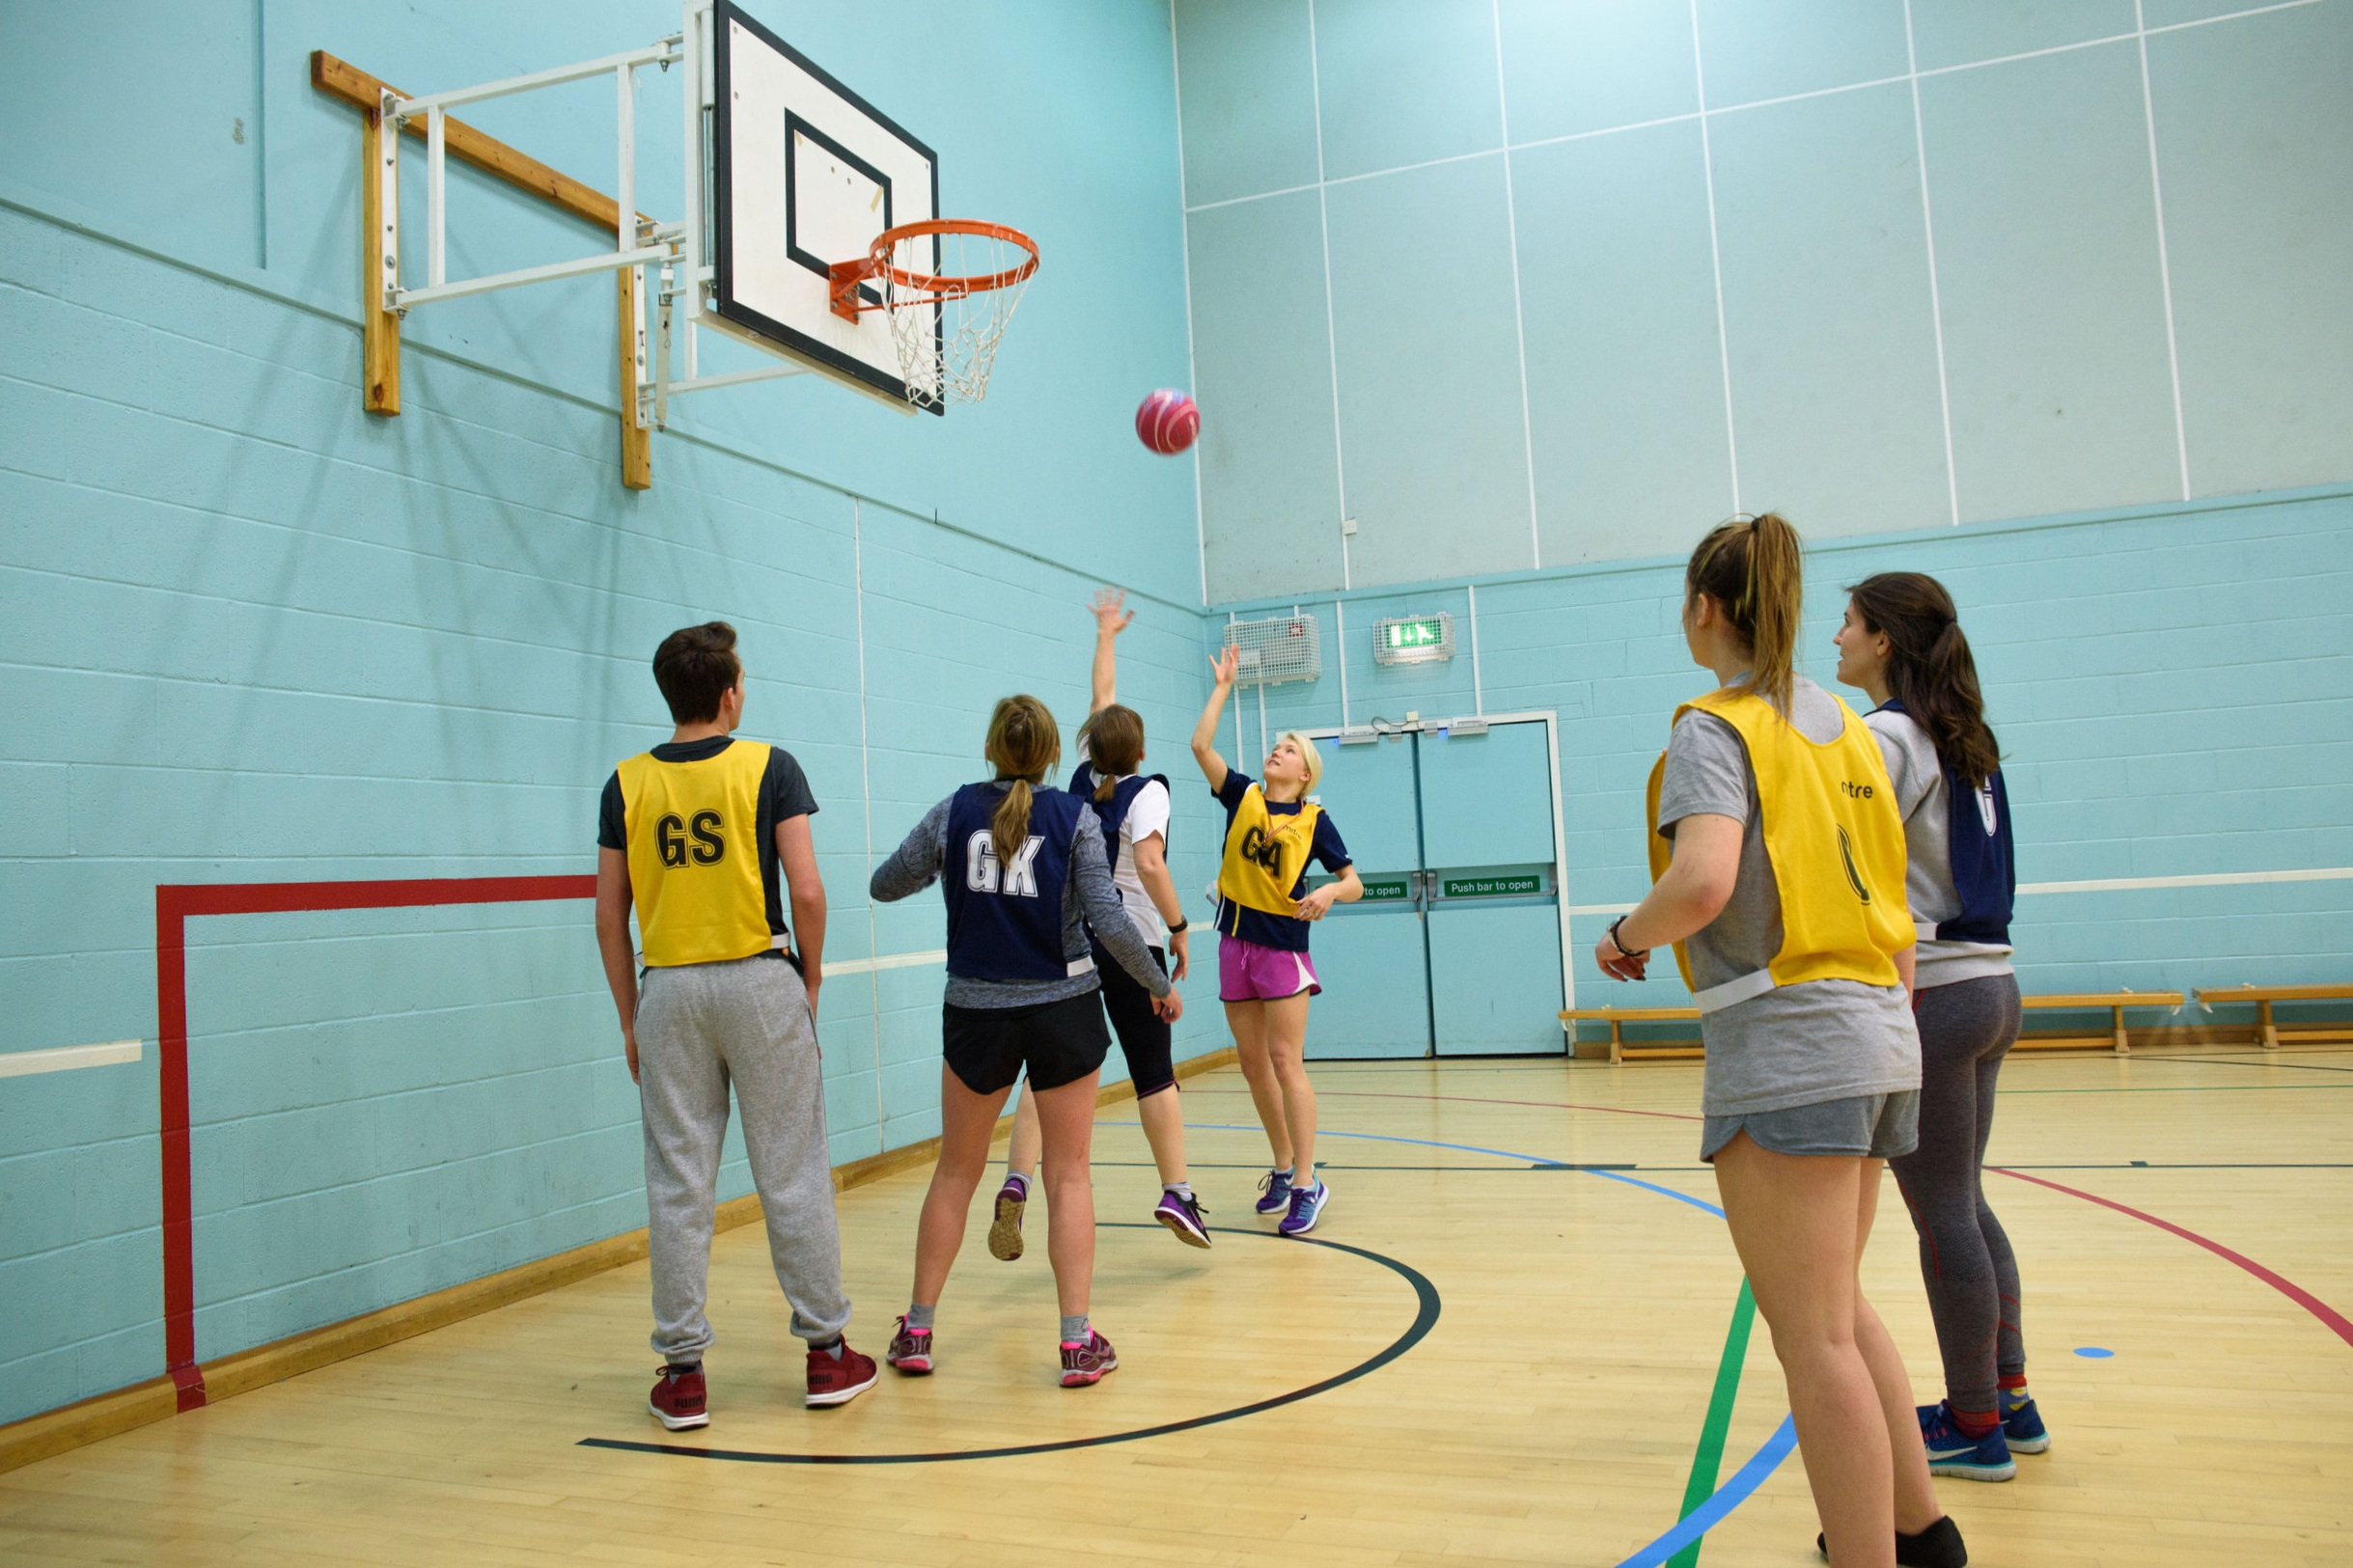 Tuesday night netball - every tuesday evening 8-9pm(everyone is welcome!)City academy, 299 bluebell rd, norwich, nr4 7lp